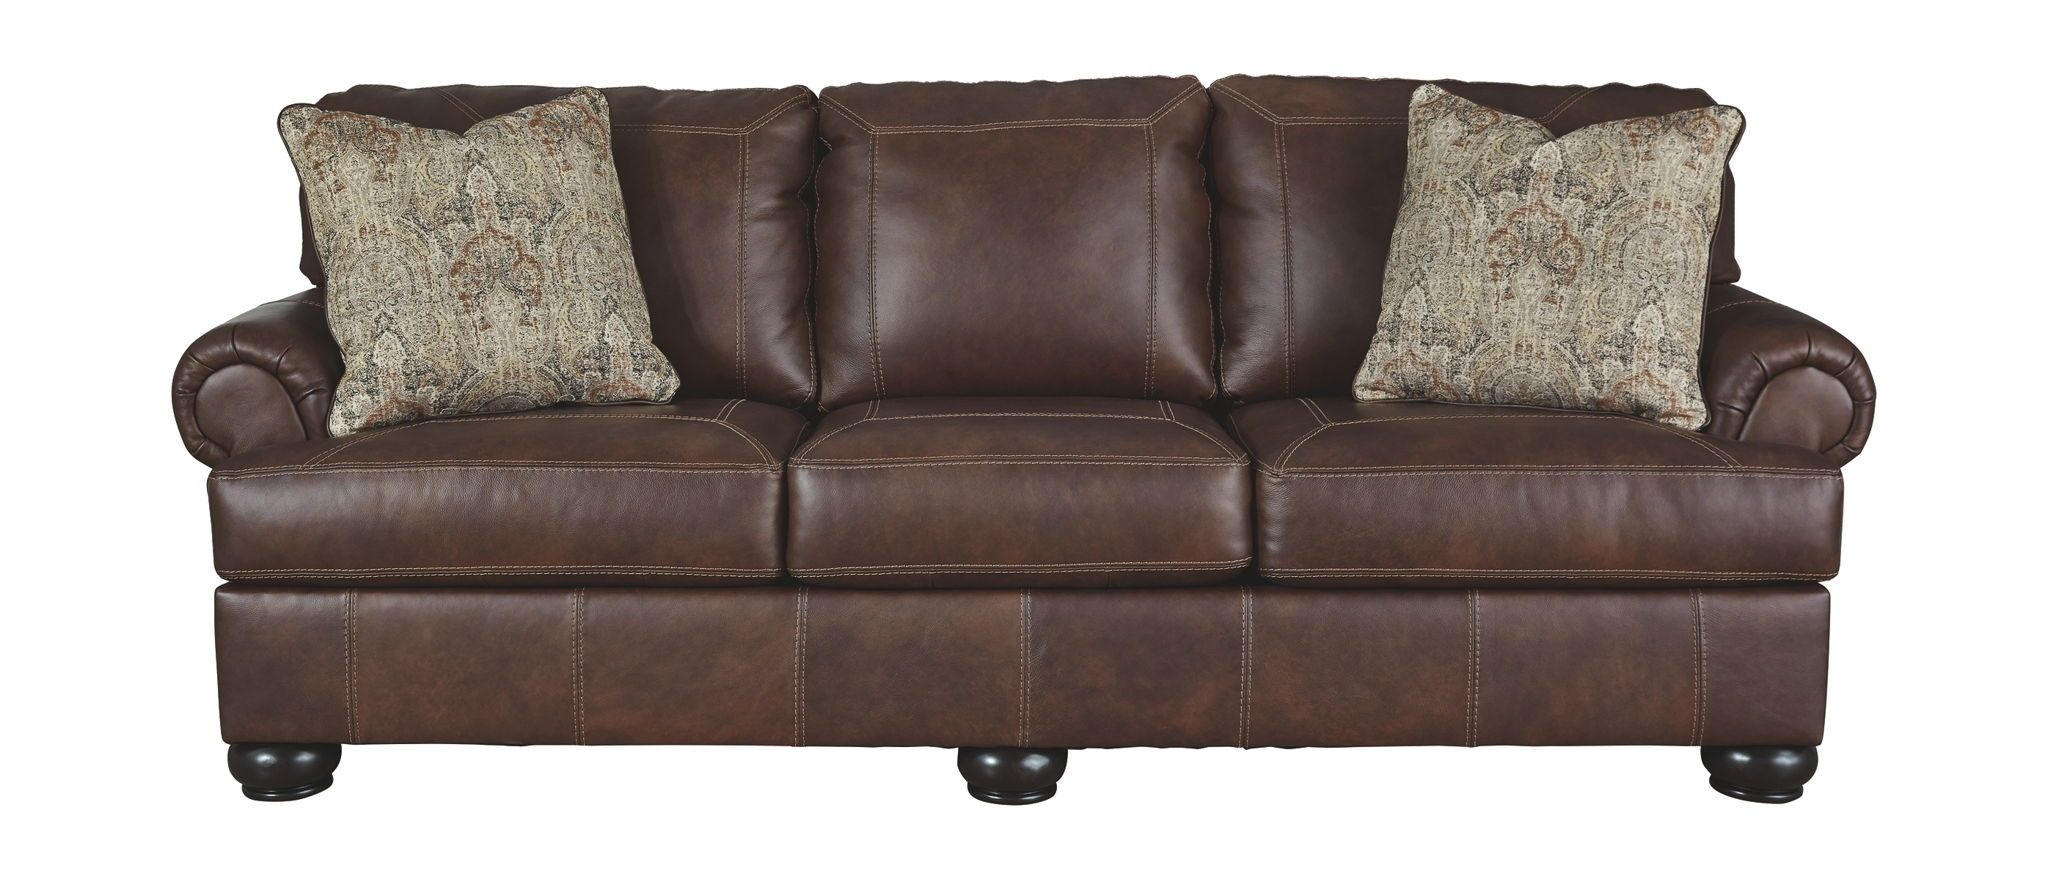 Beamerton Sofa Sleeper